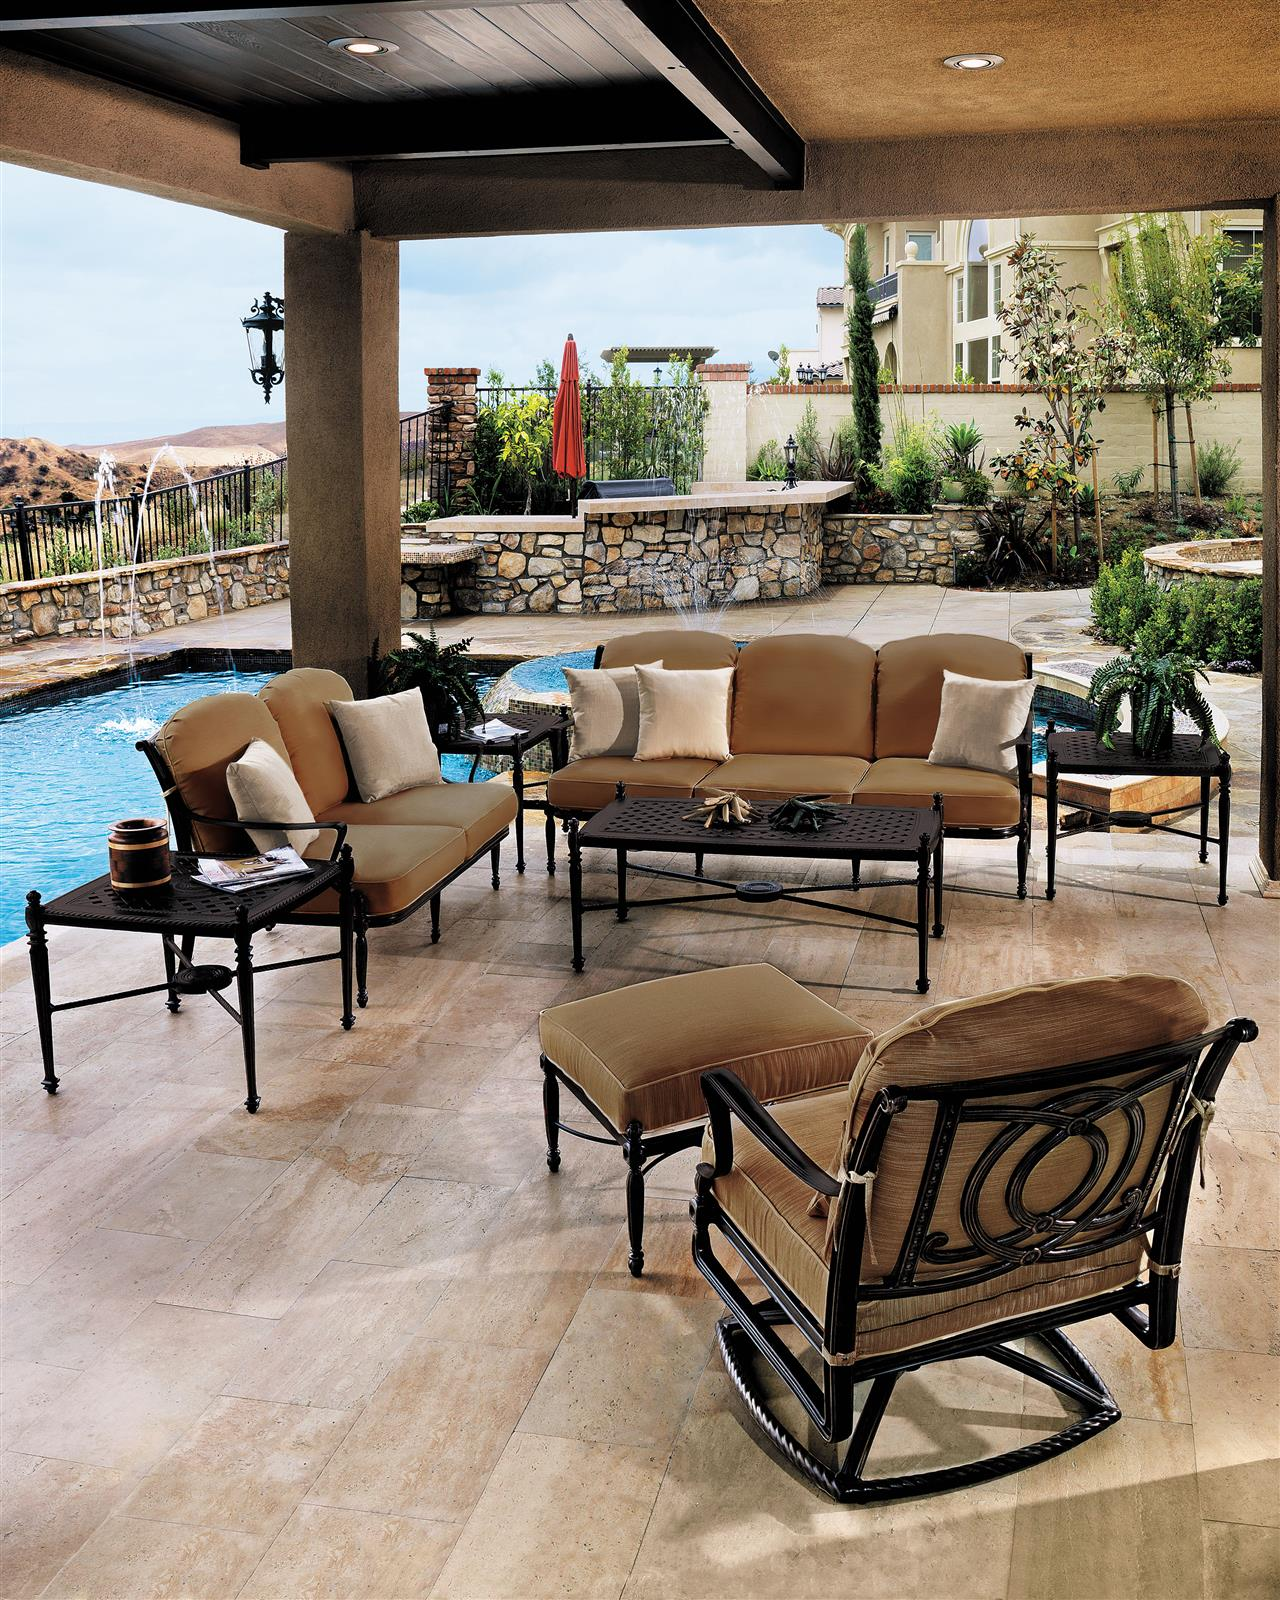 Outdoor Living - Sequoia Supply on Outdoor Living Patio id=86630